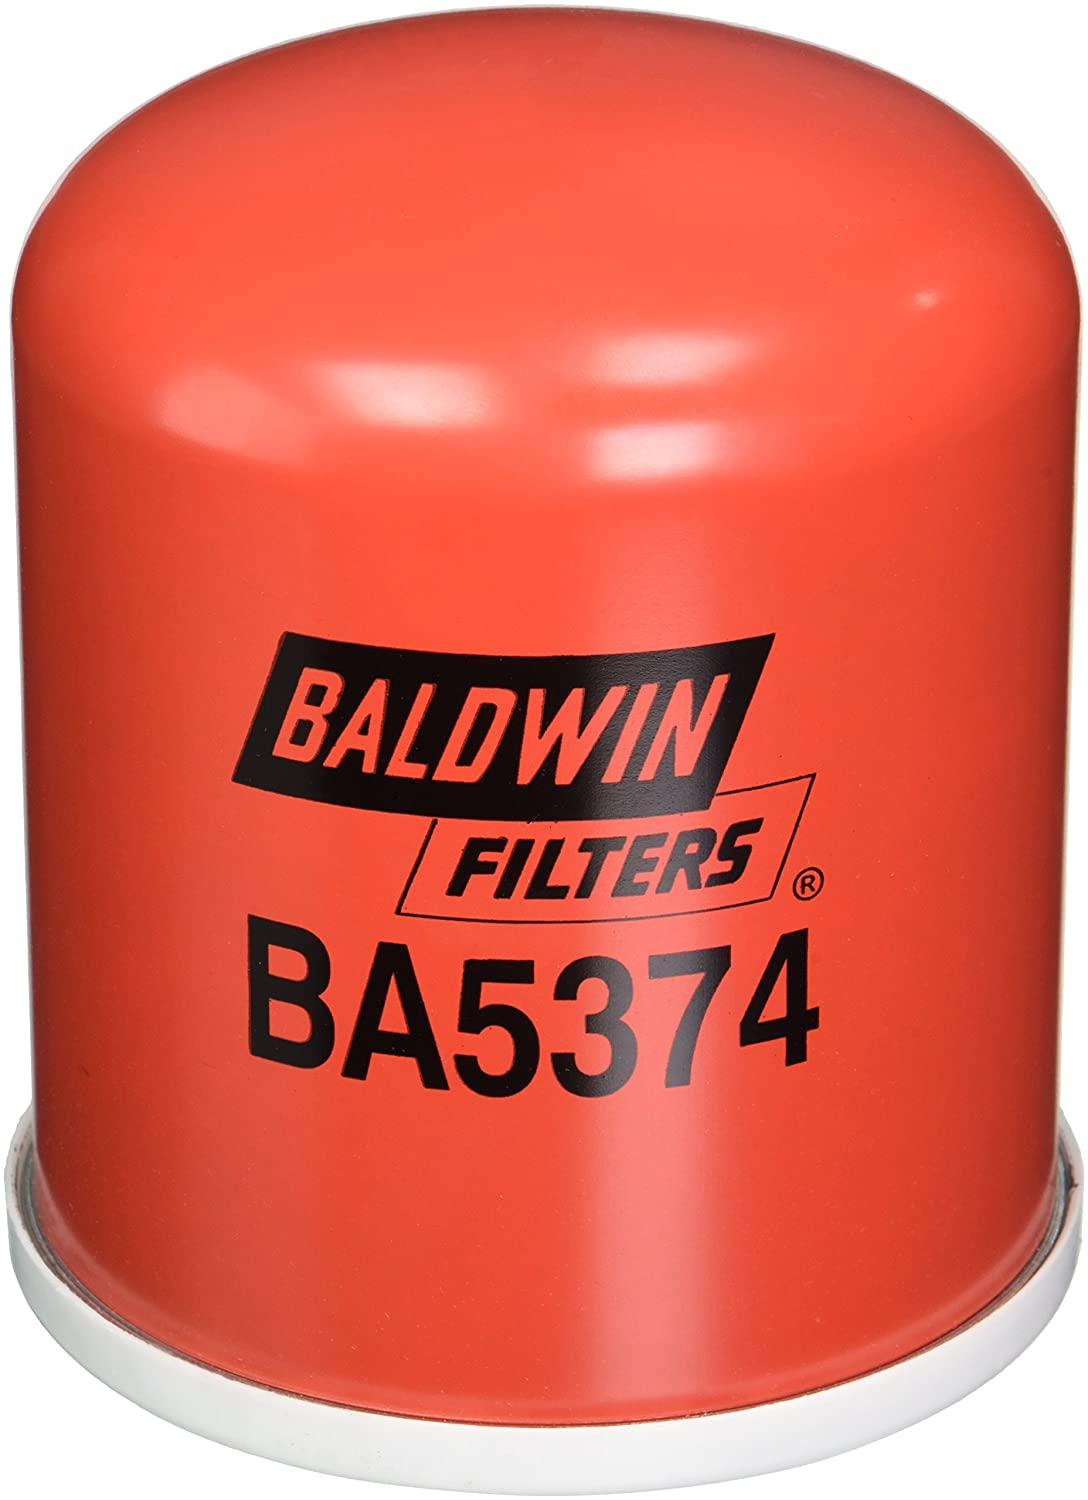 Baldwin Filters Ba5374 Spin On Automotive Bendix Fuel